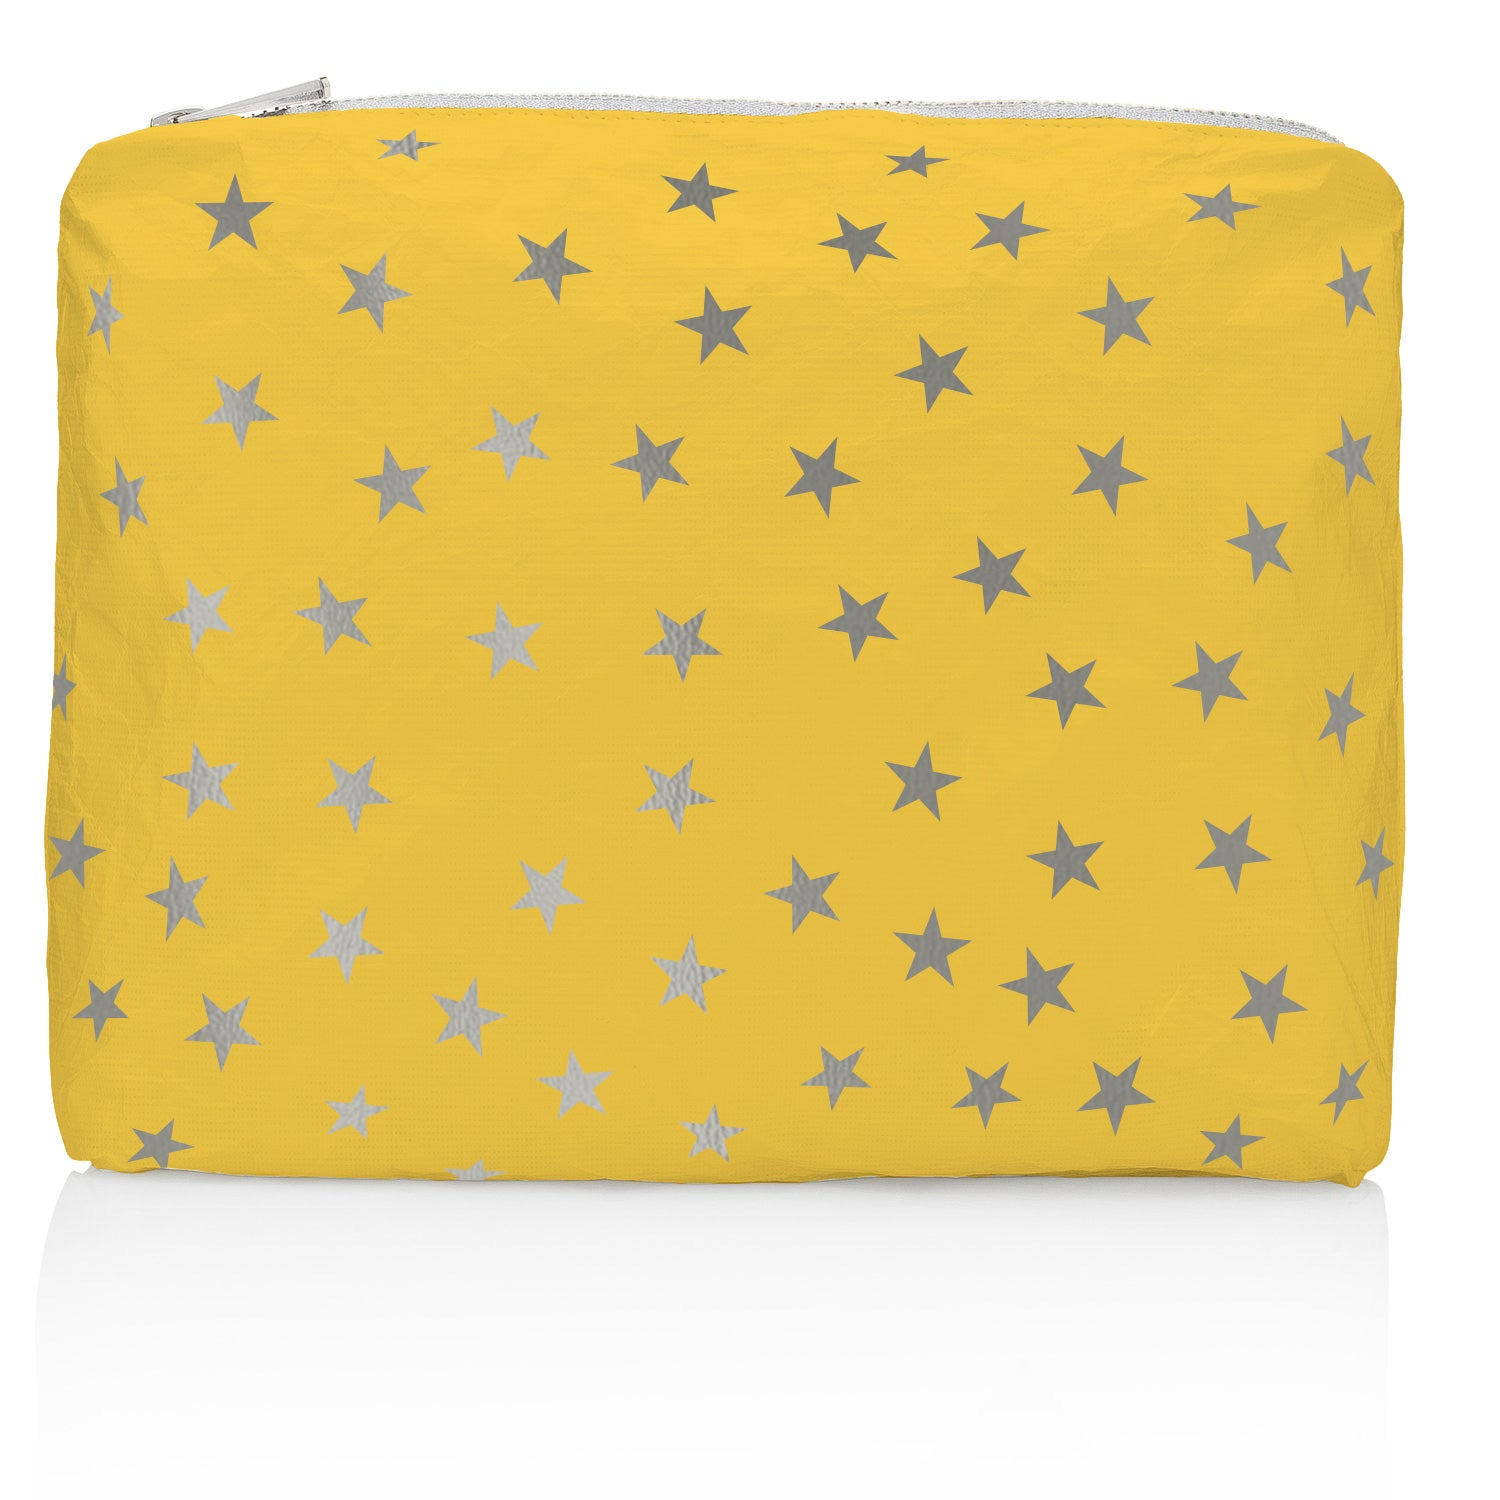 Travel Pack - Makeup Pouch - Beach Pack - Medium Pack - Island Sunshine with Myriad Silver Stars